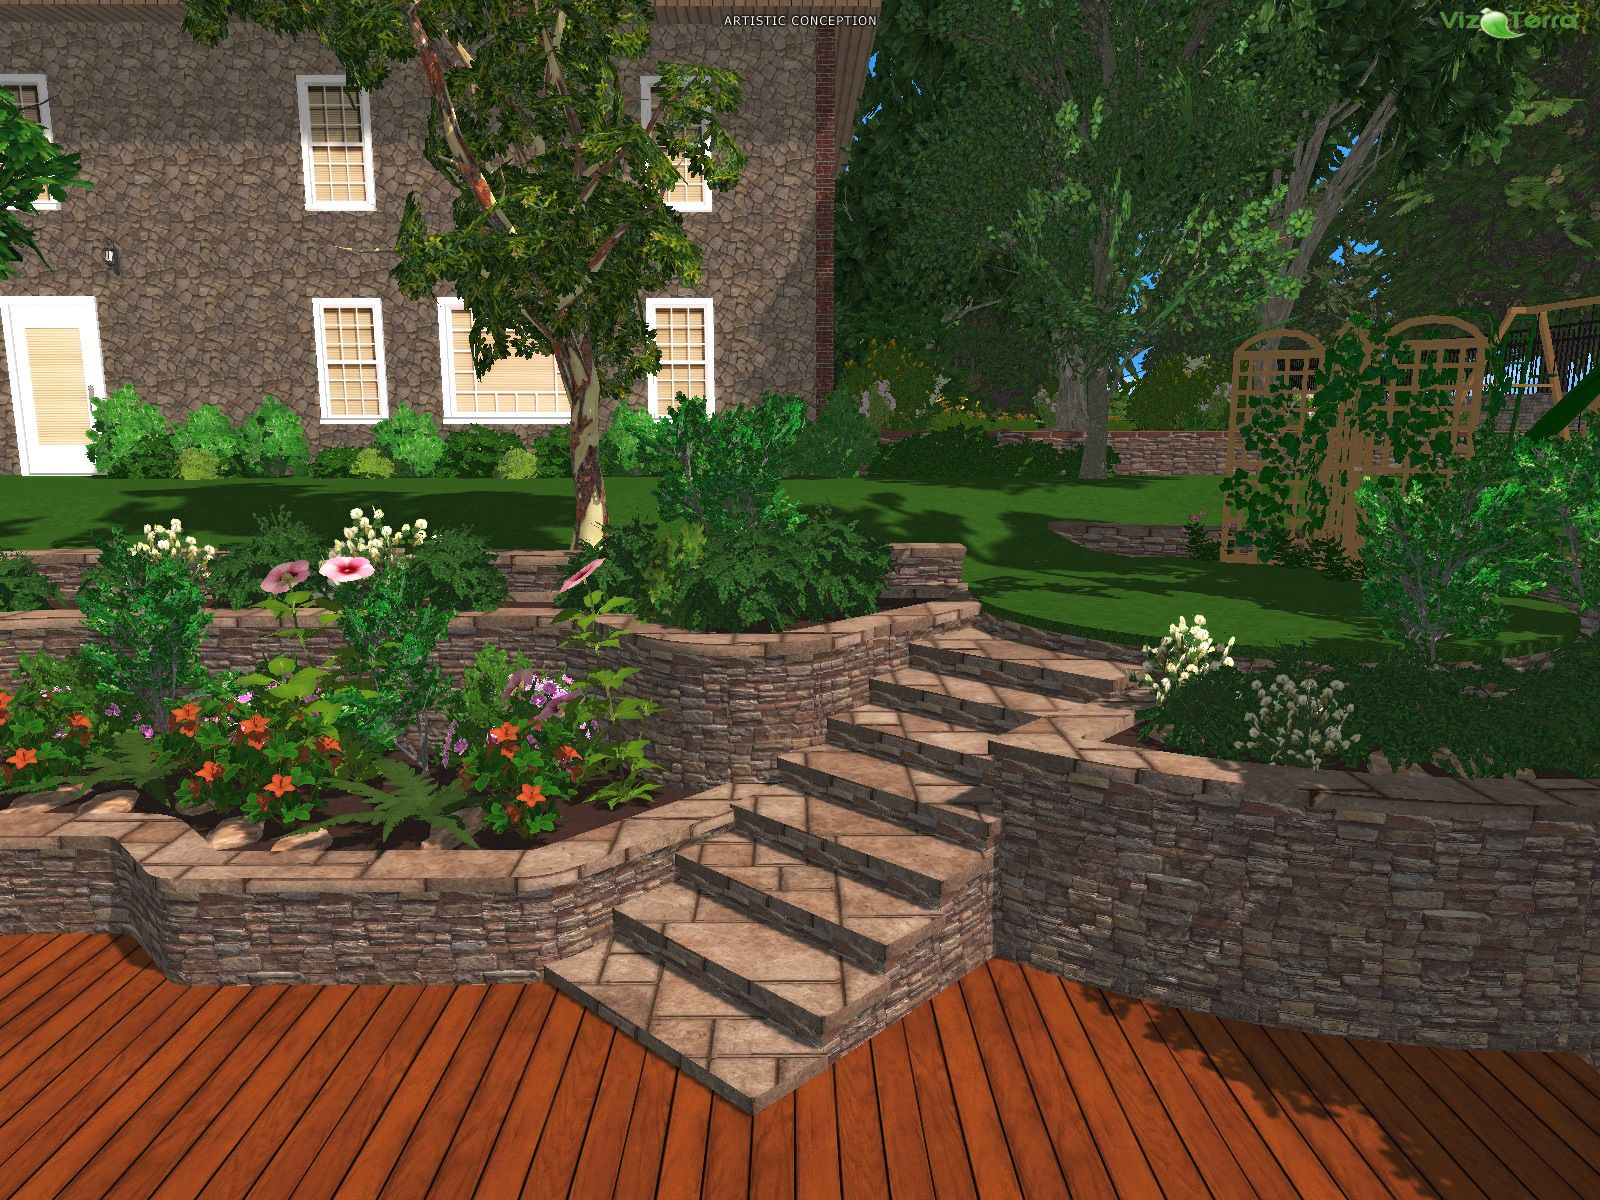 13 Clever Ways How To Make Backyard Landscaping Software Backyard intended for 10 Genius Tricks of How to Upgrade Backyard Landscape Software